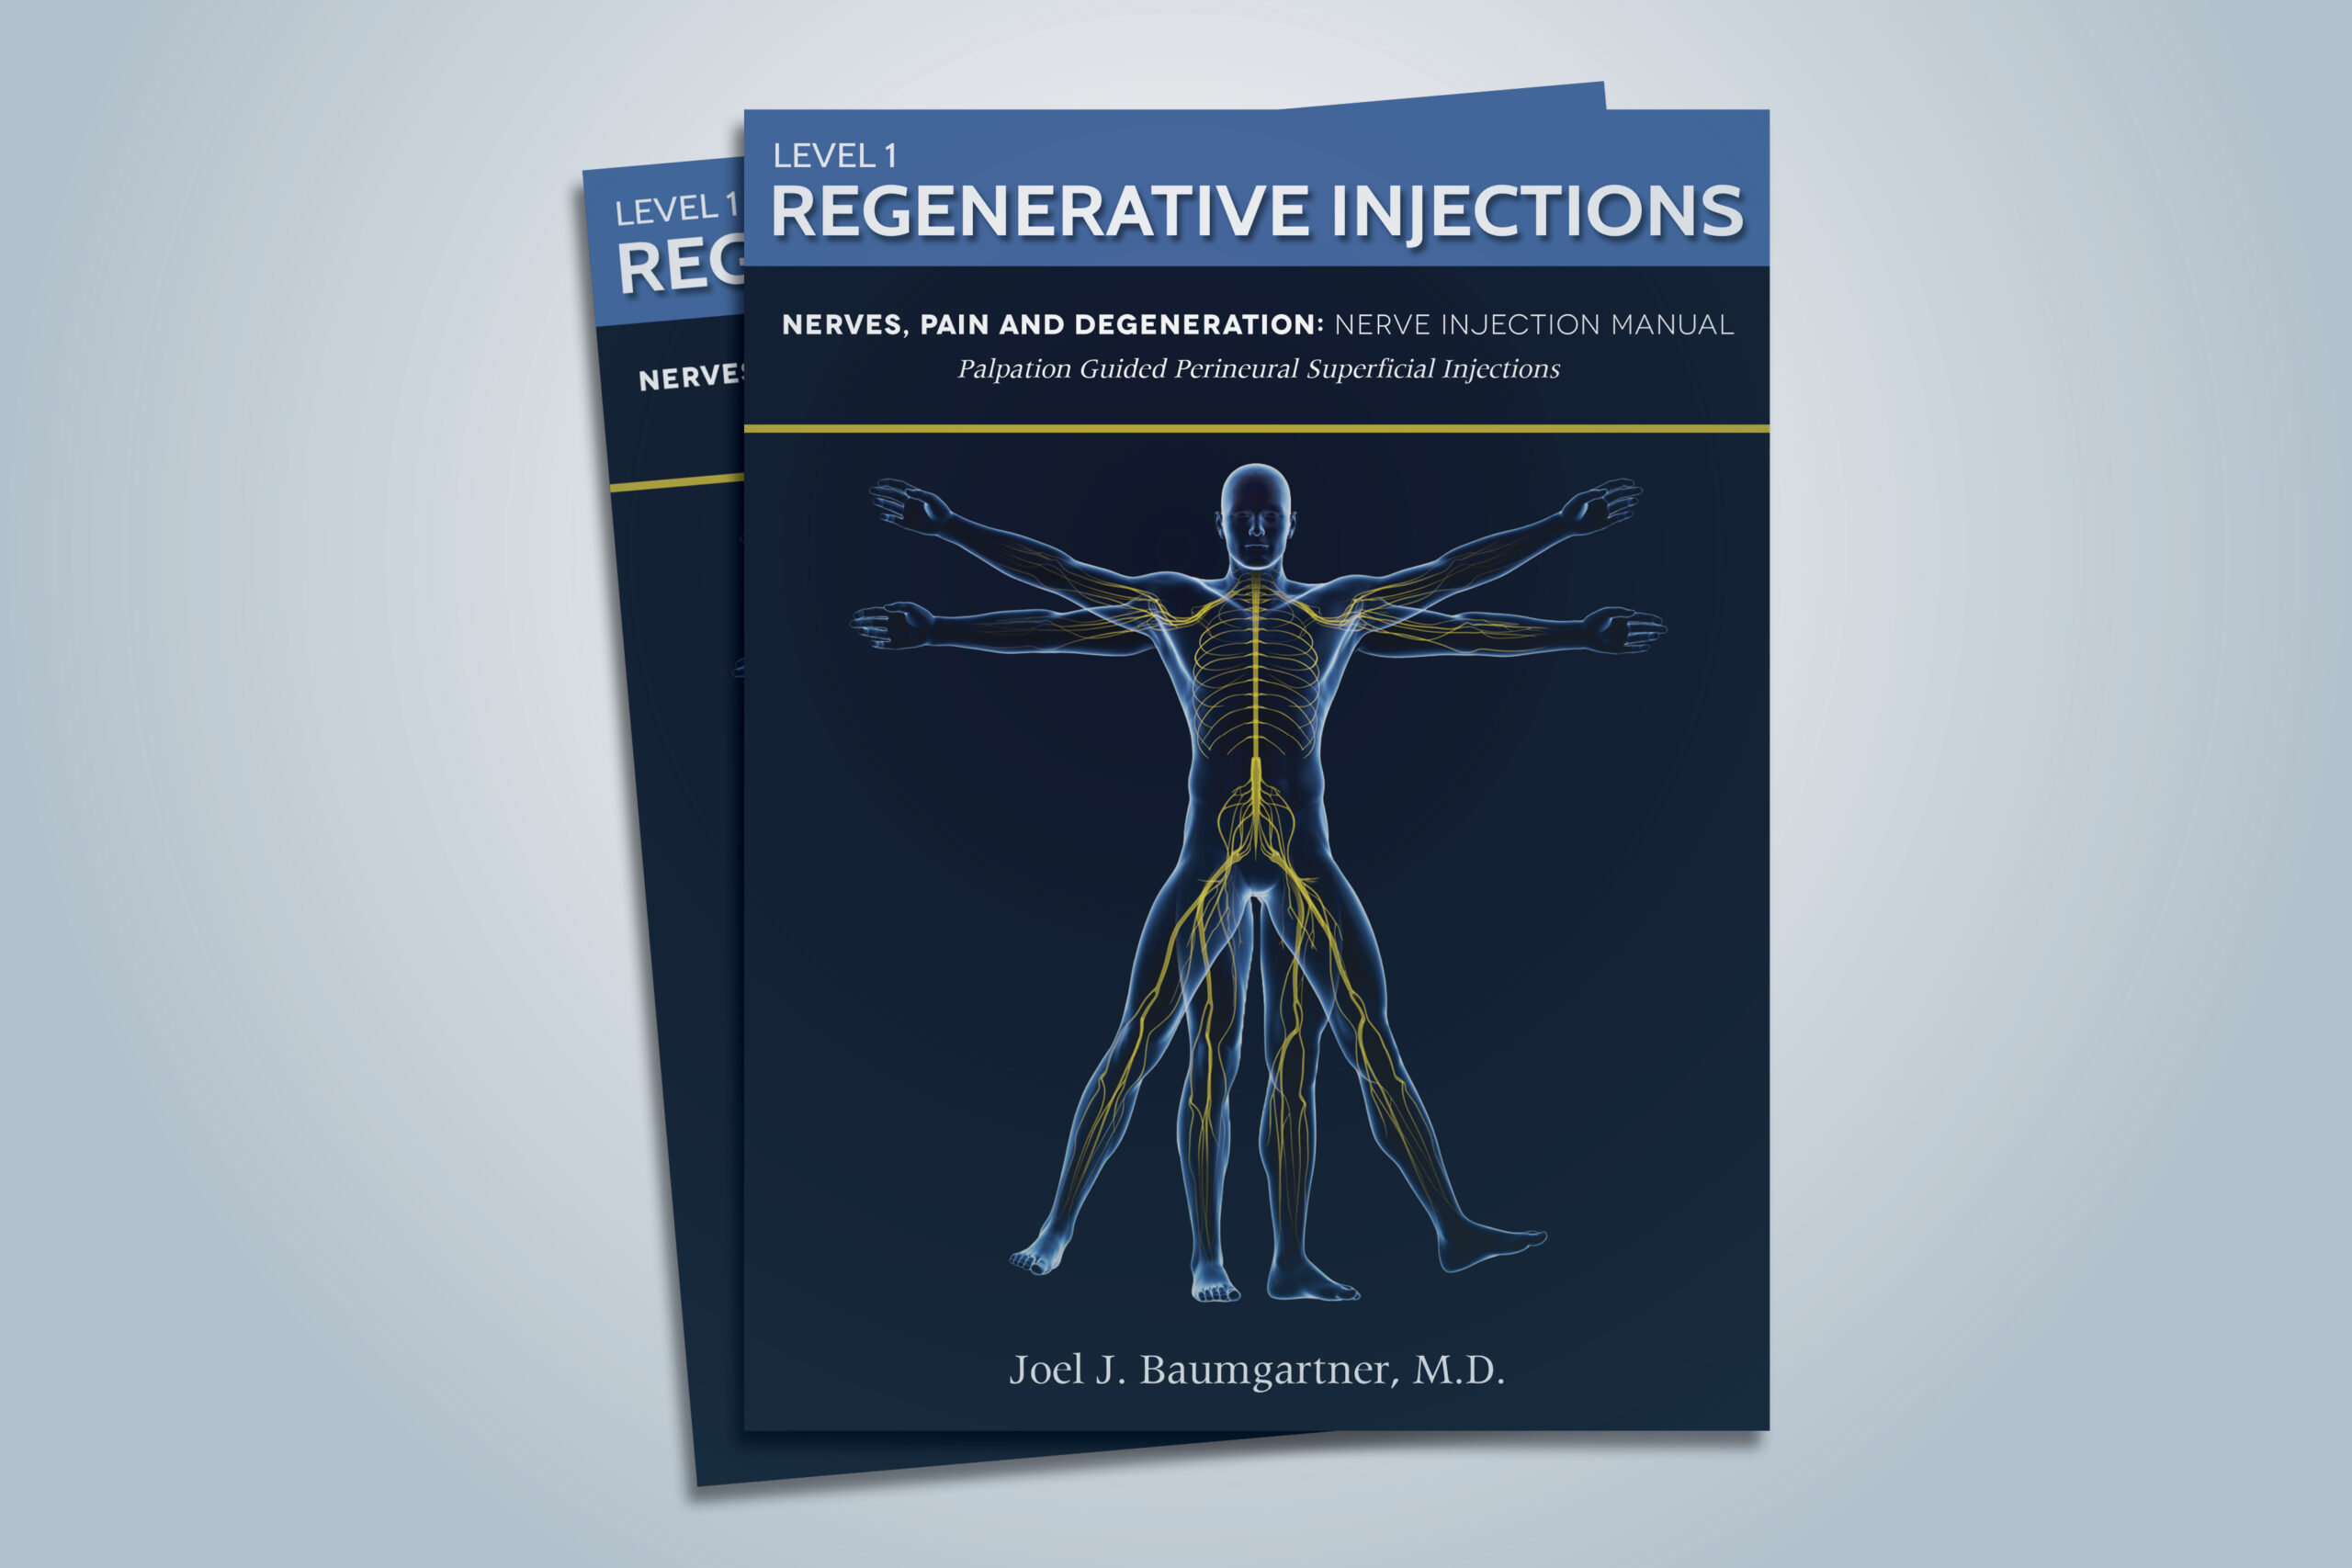 show the level one version of nerve regenerative injection